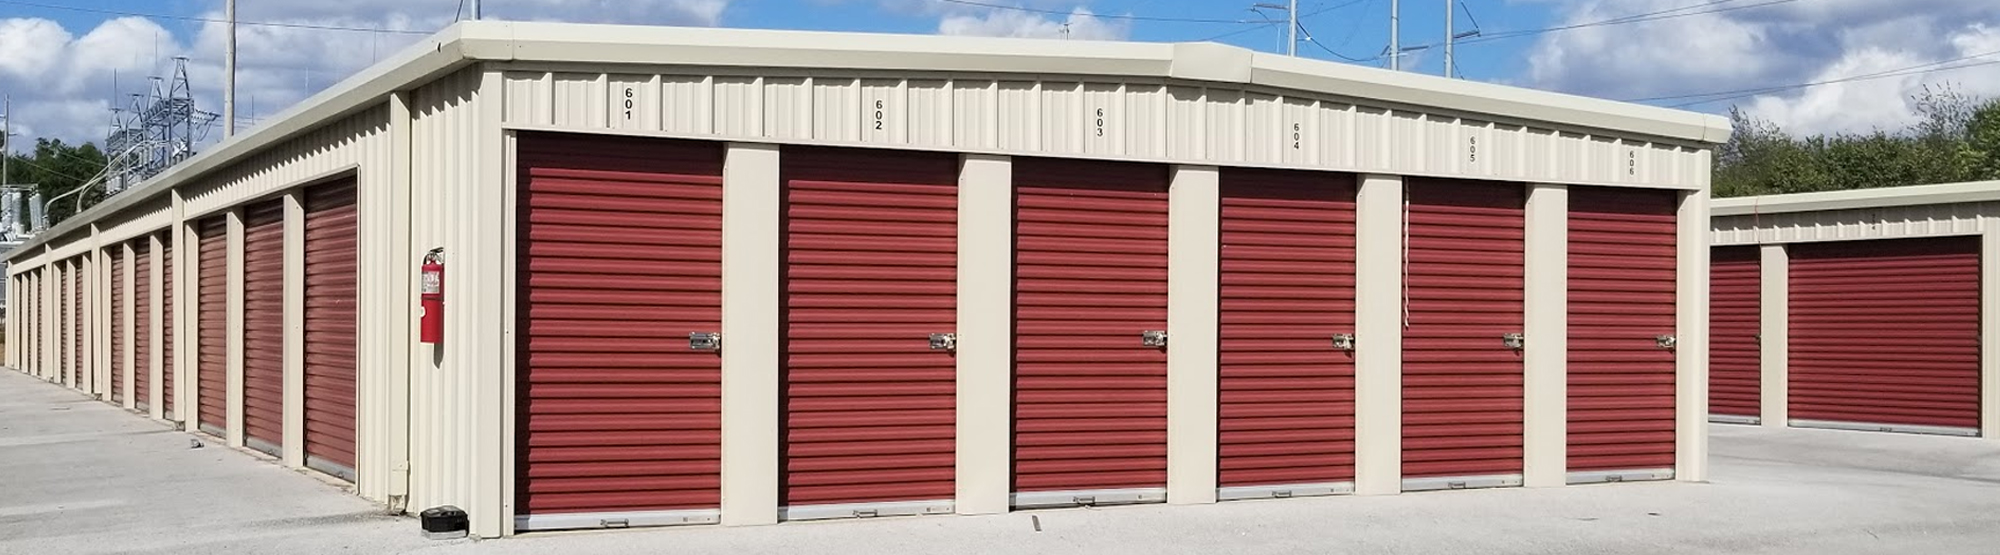 Self Storage Units In Springdale Bella Vista Bethel